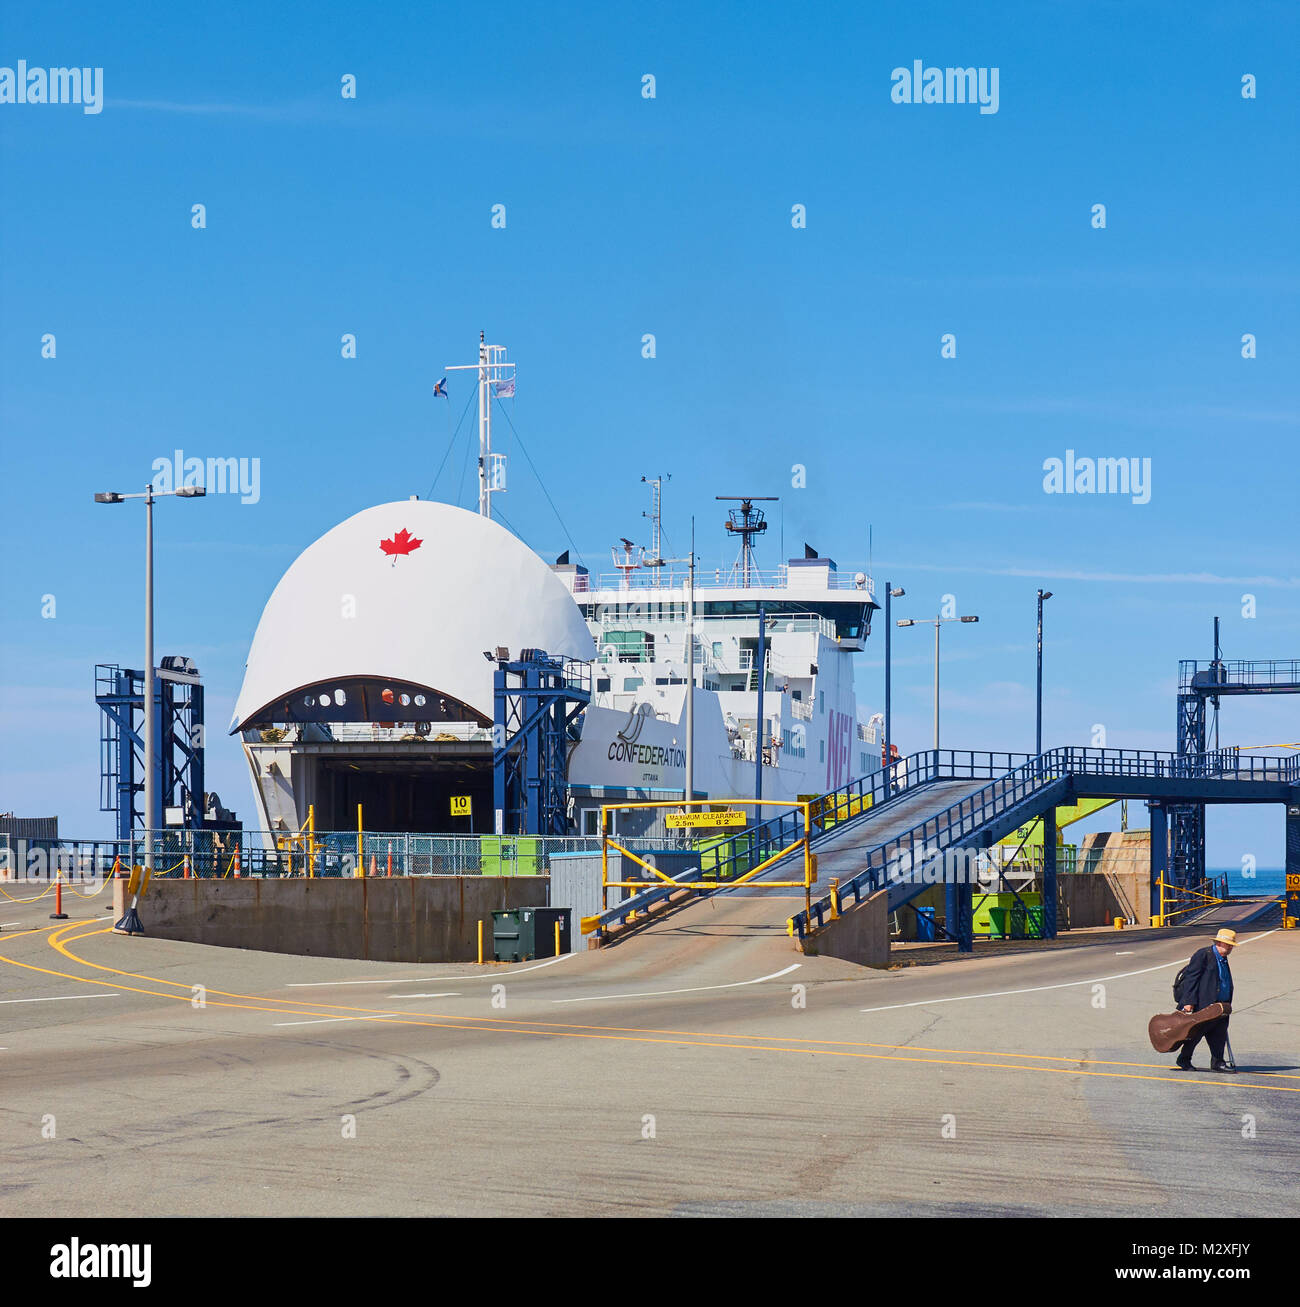 Foot passenger disembarking from a Northumberland ferry carrying a guitar case, Caribou, Nova Scotia, Canada. Stock Photo